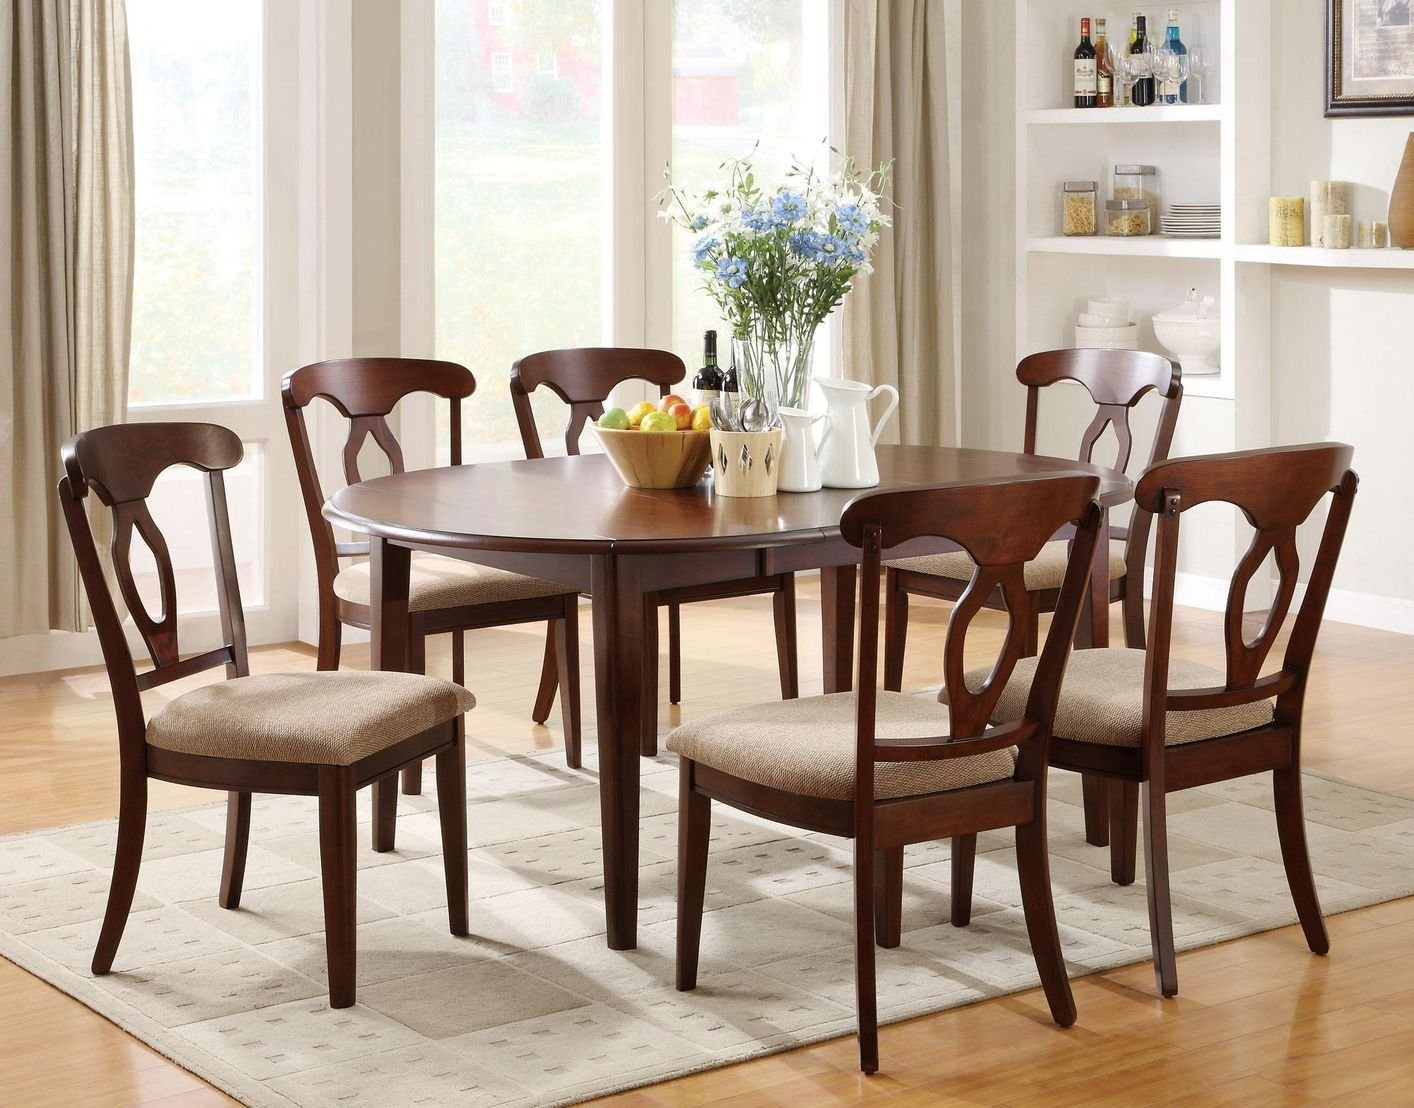 Accommodate An Array Of Dinner Party Sizes With This Versatile Oval Dining Table